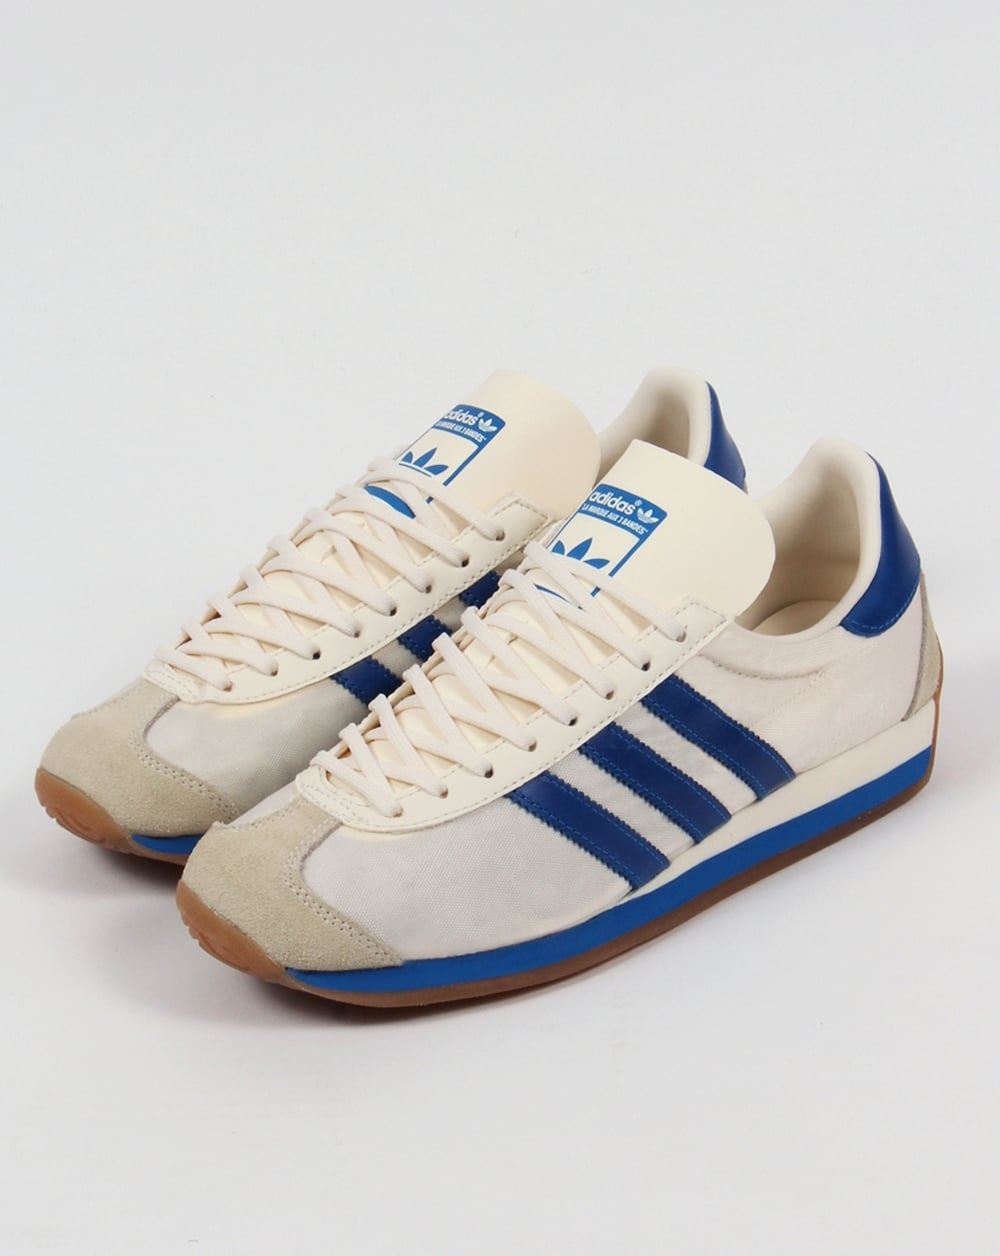 Adidas Country OG Trainers Chalk White/Bluebird